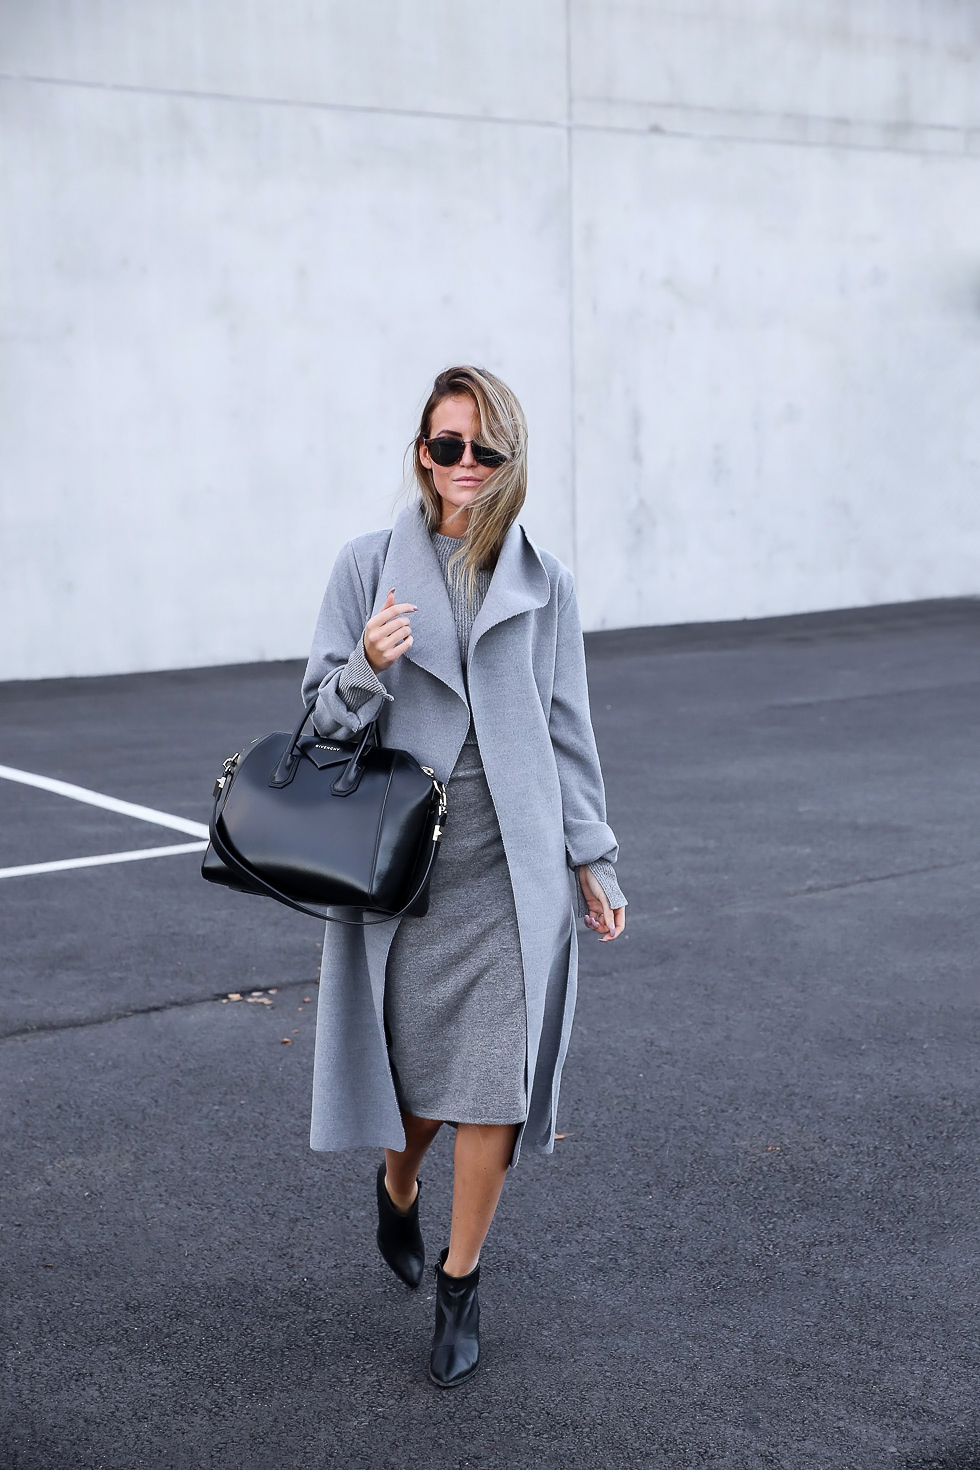 a97ae63cd68 Kristin Sundberg wears a grey sweater dress matched with a grey overcoat.  Skirt  Lindex